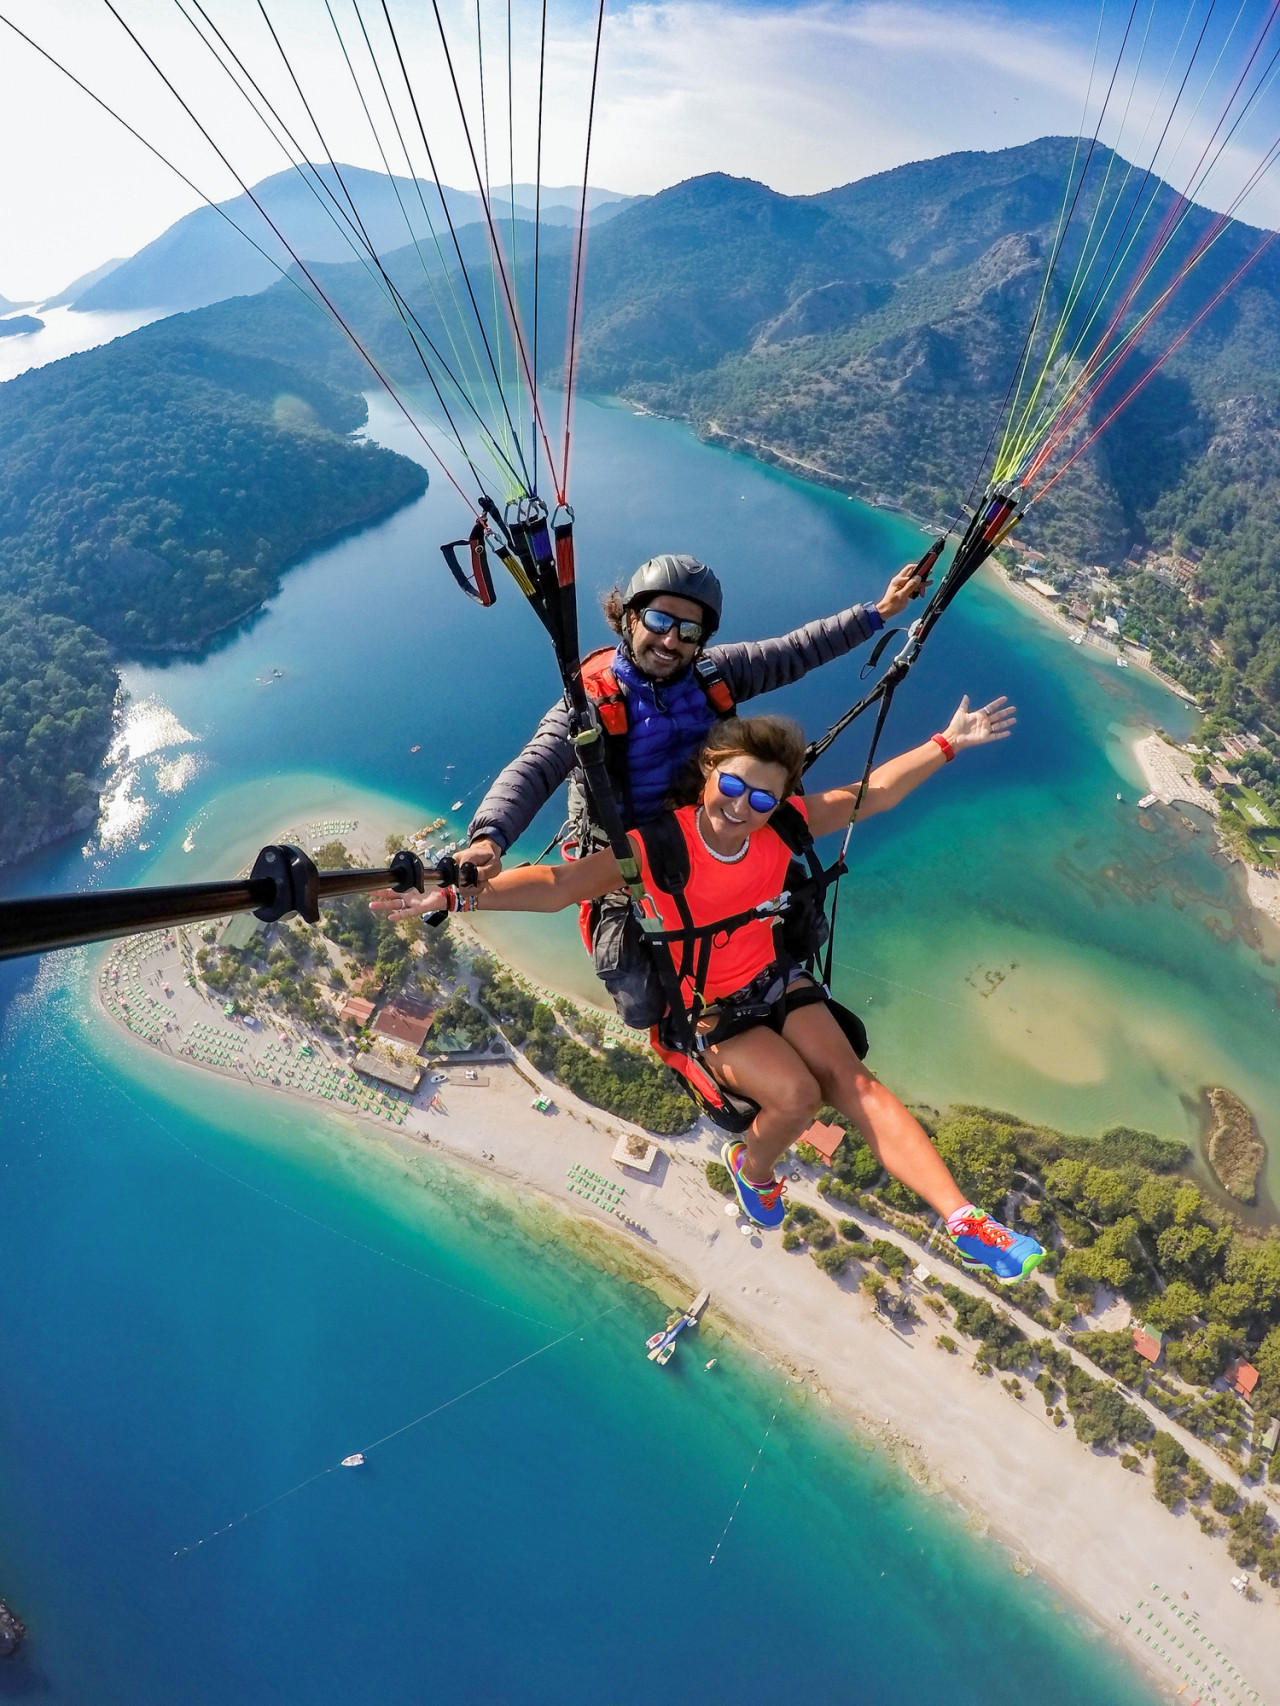 A couple tandem paragliding over an island, mountains, and blue water.